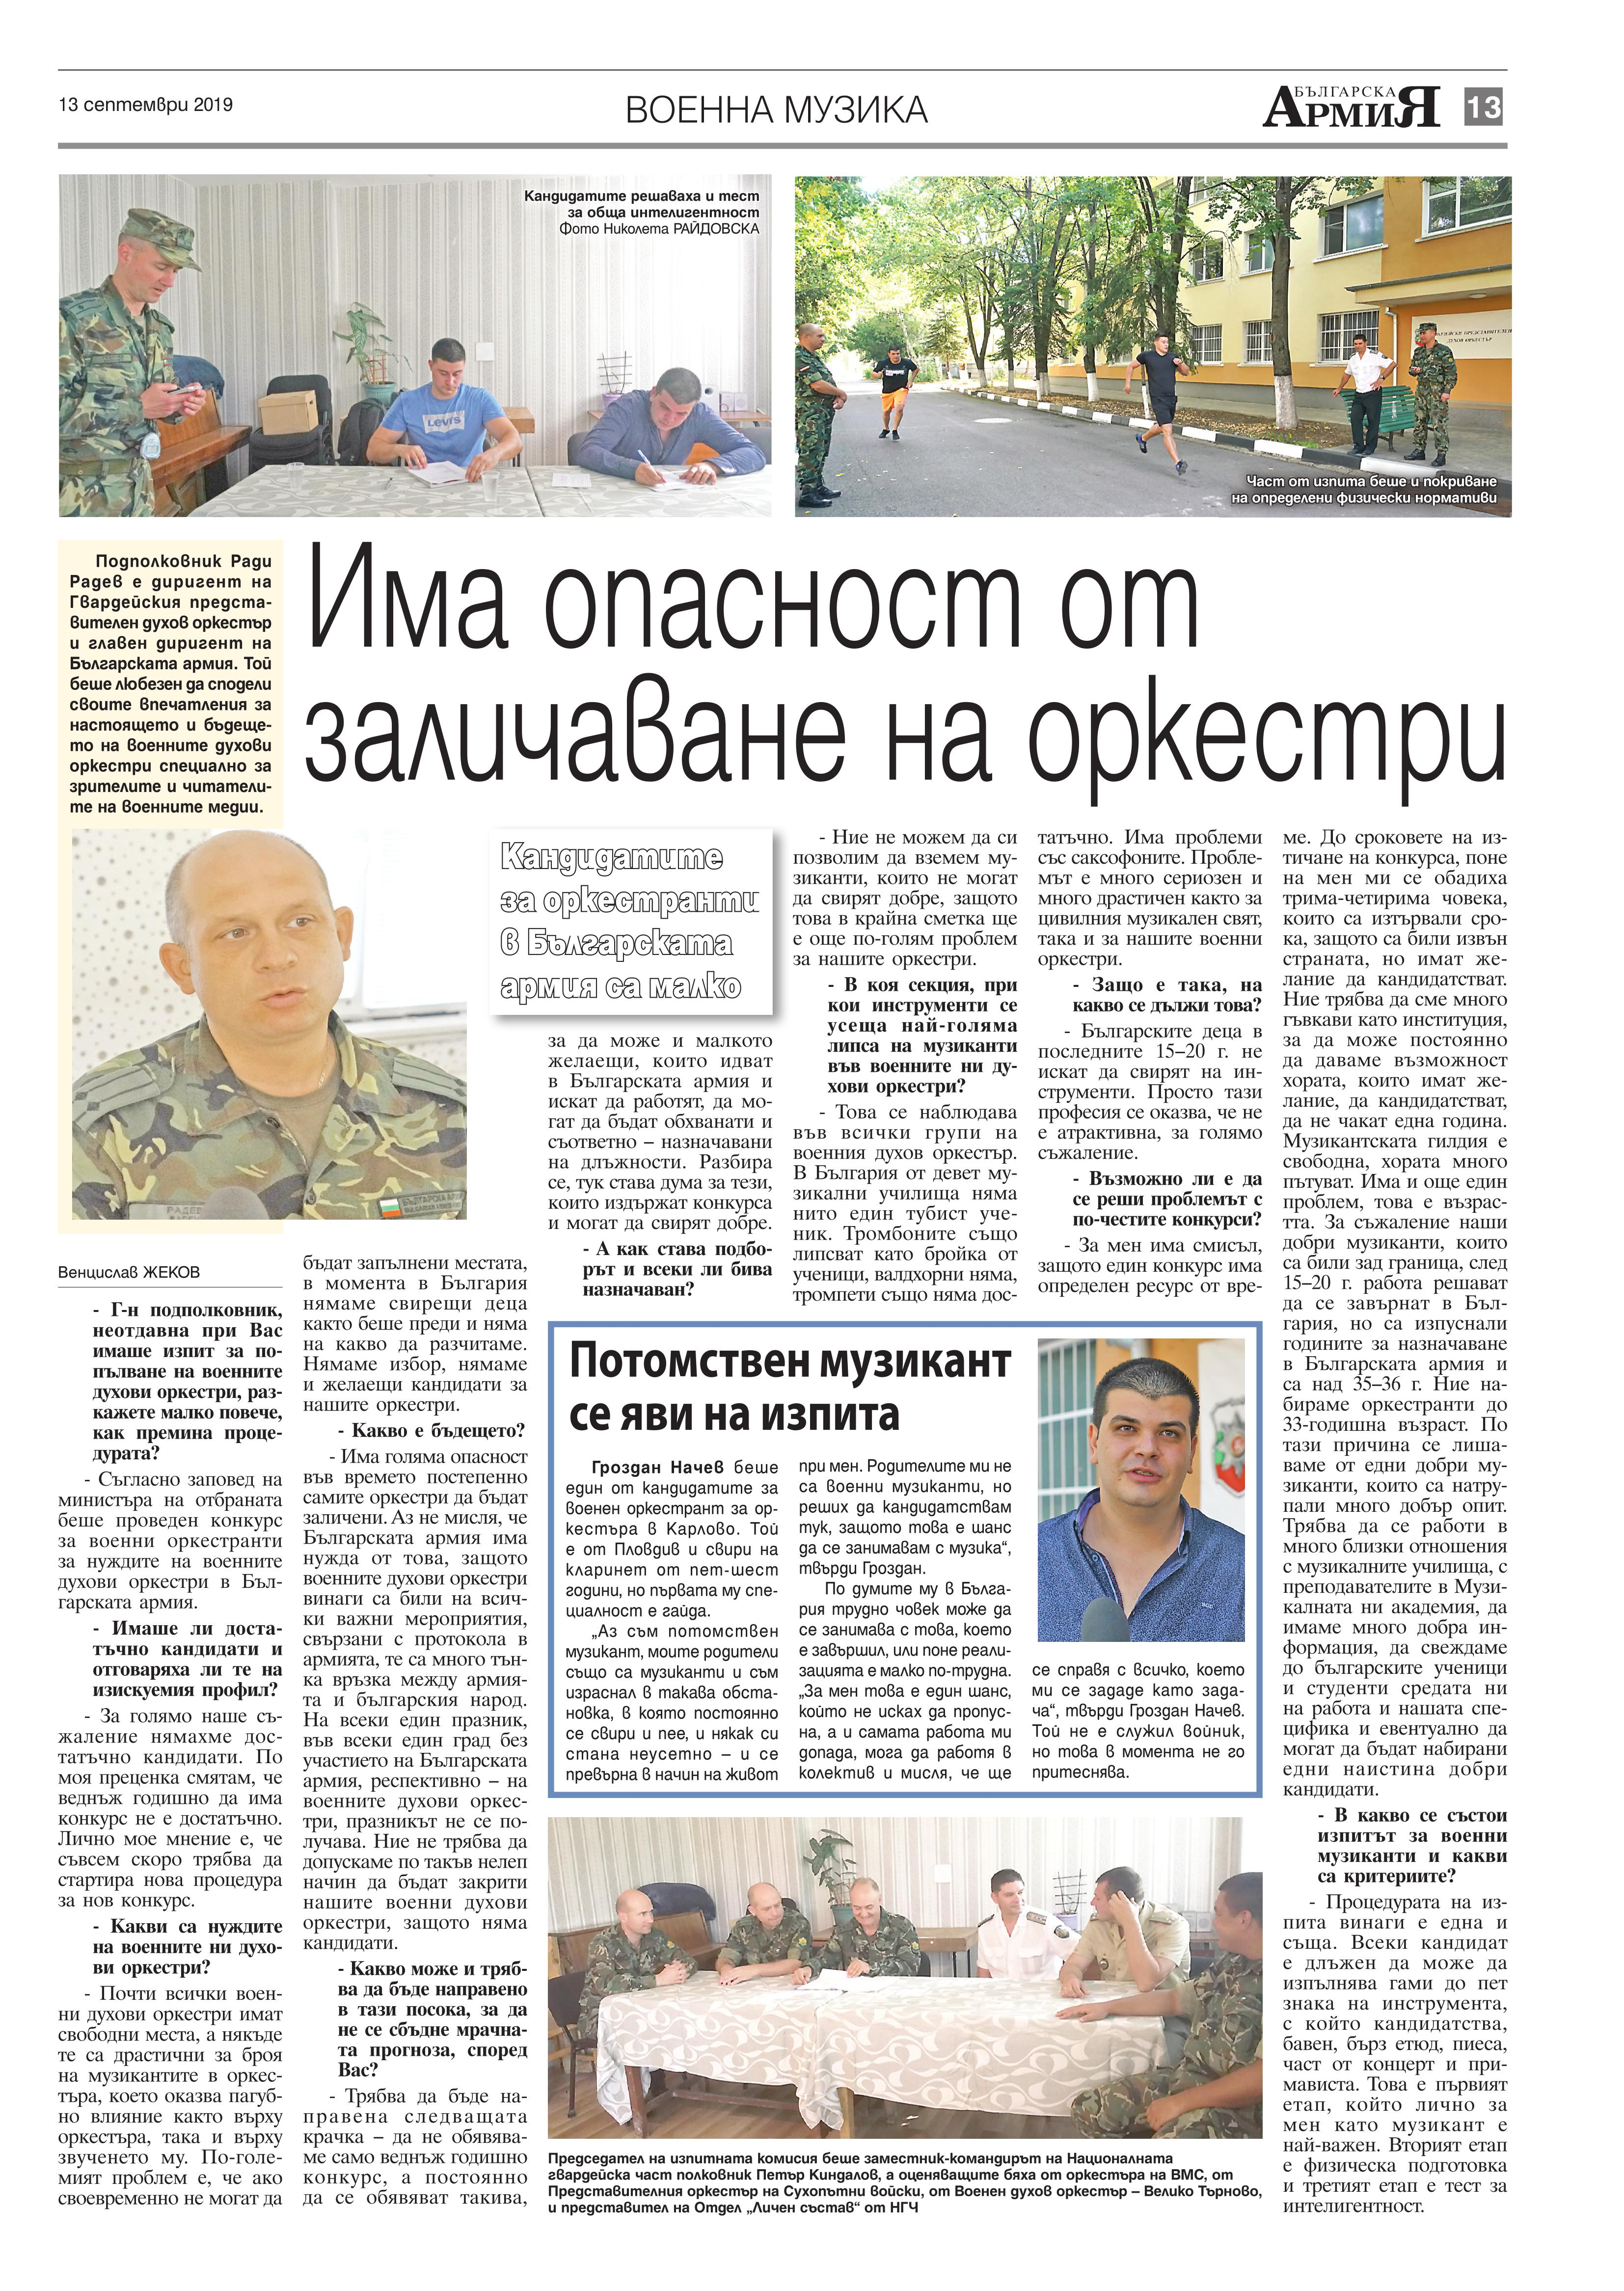 https://armymedia.bg/wp-content/uploads/2015/06/13.page1_-109.jpg